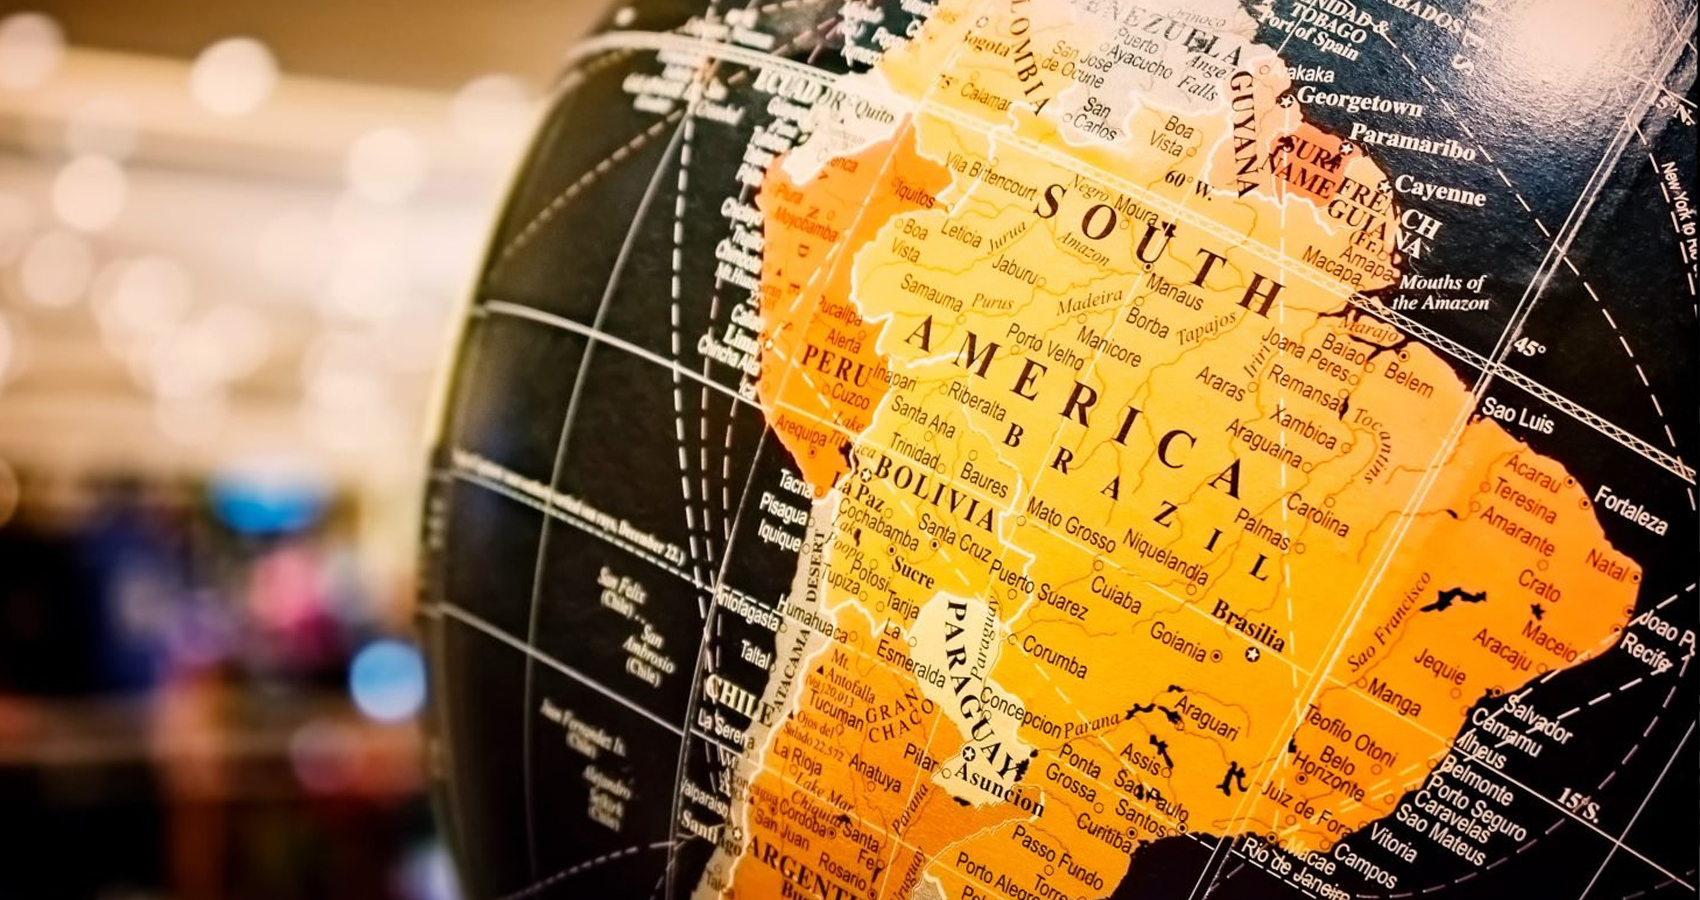 The possibility of accepting bitcoin in Latin American countries